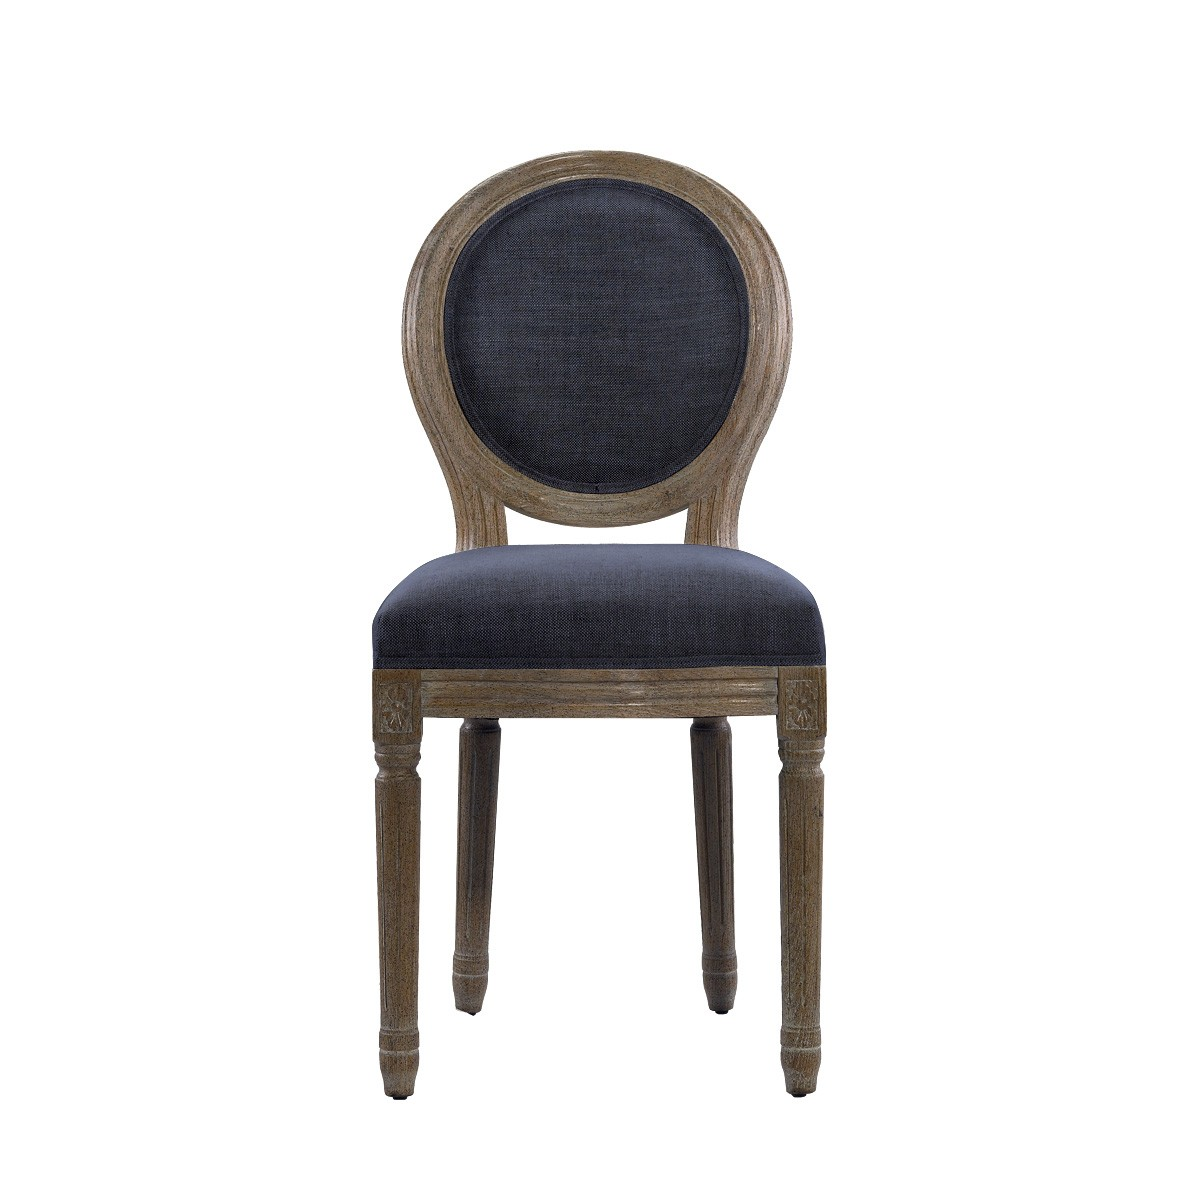 French mini linen chair